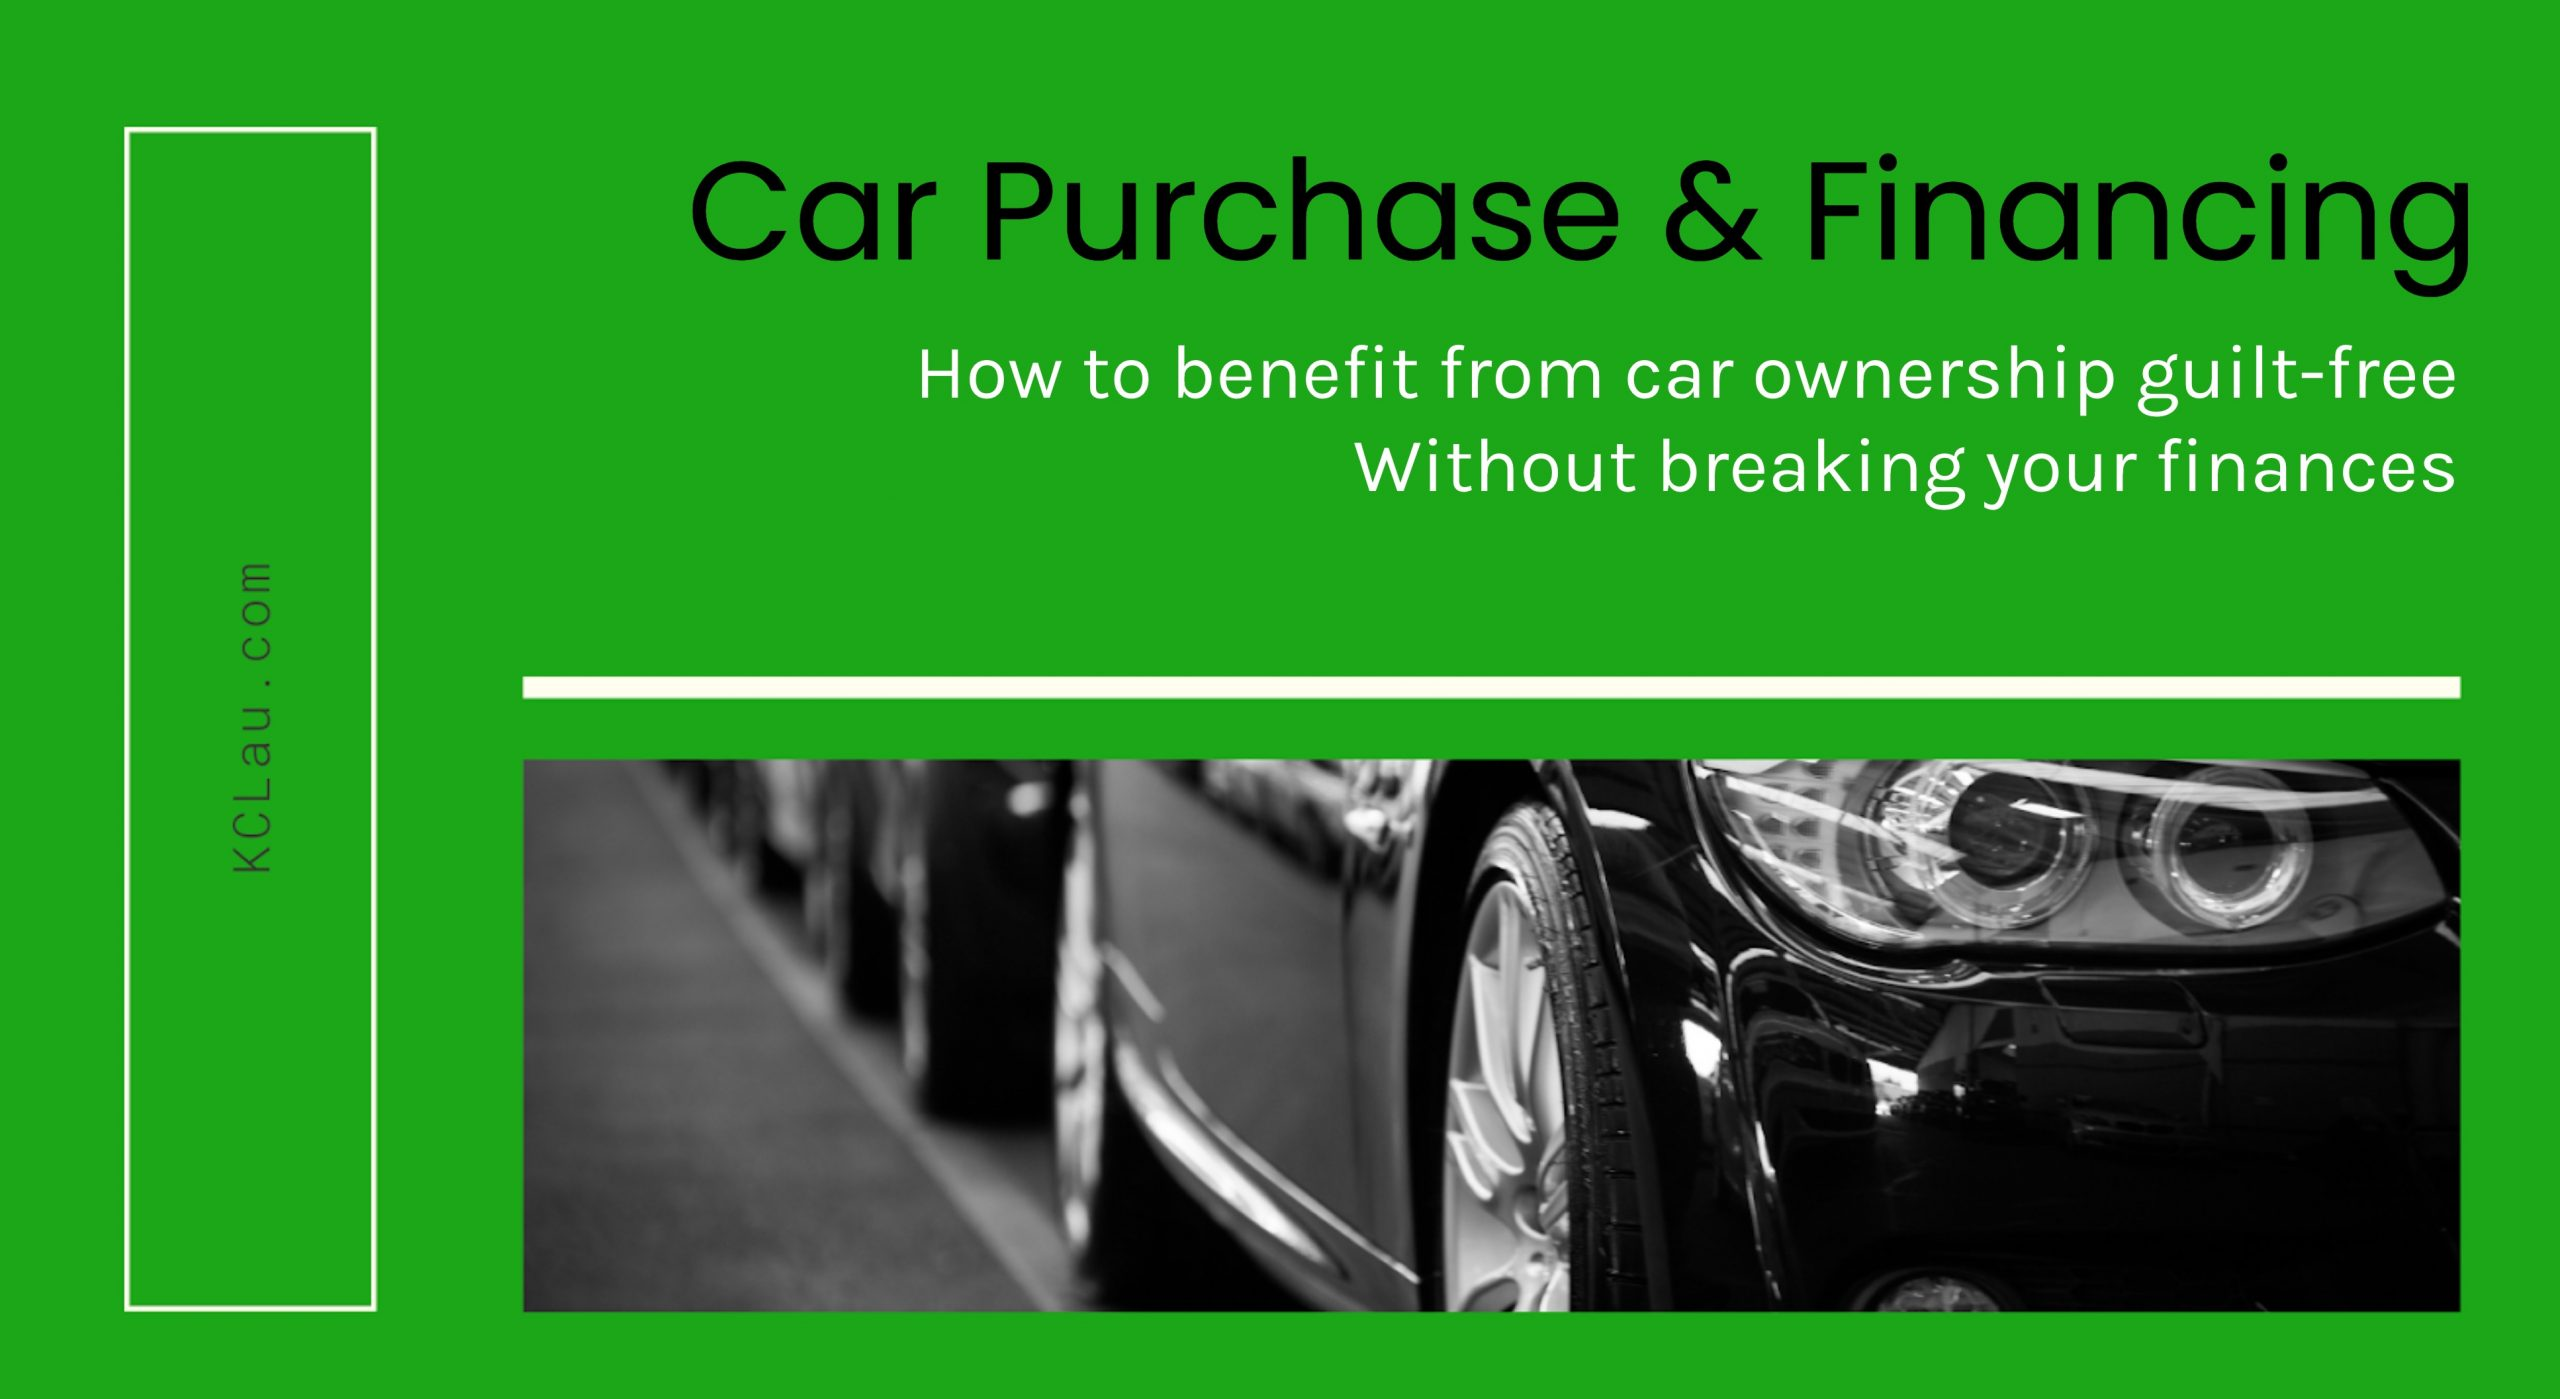 How to Benefit from Car Ownership Guilt-Free Without Breaking Your Finances